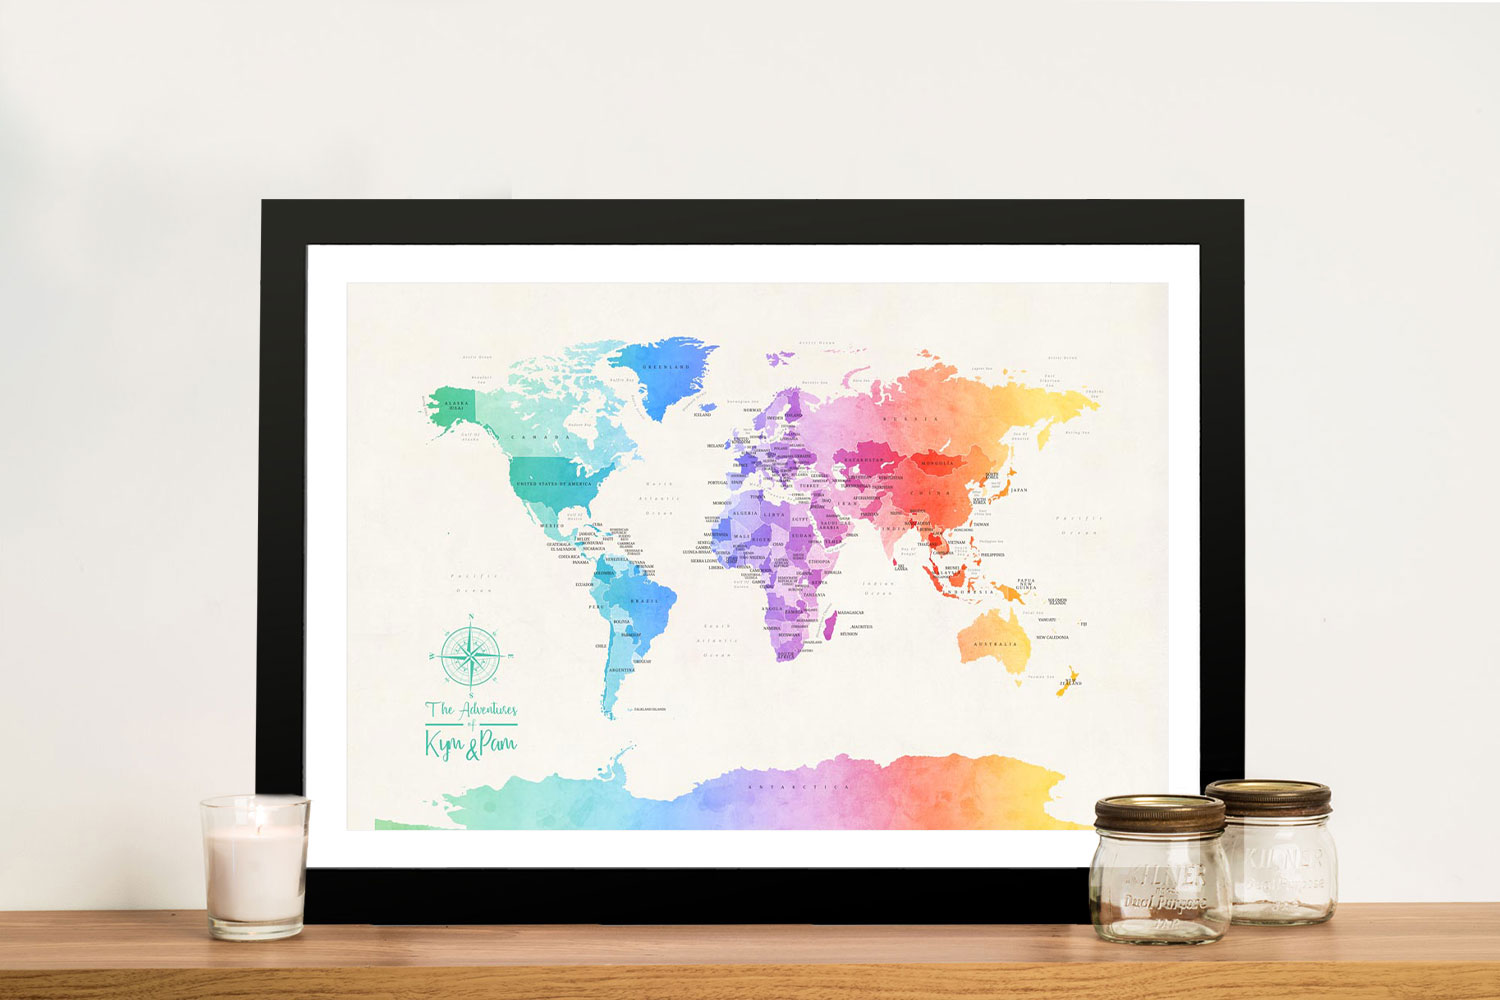 Buy a Political World Map in Colourful Watercolour Tones | Political World Map in Watercolours 3